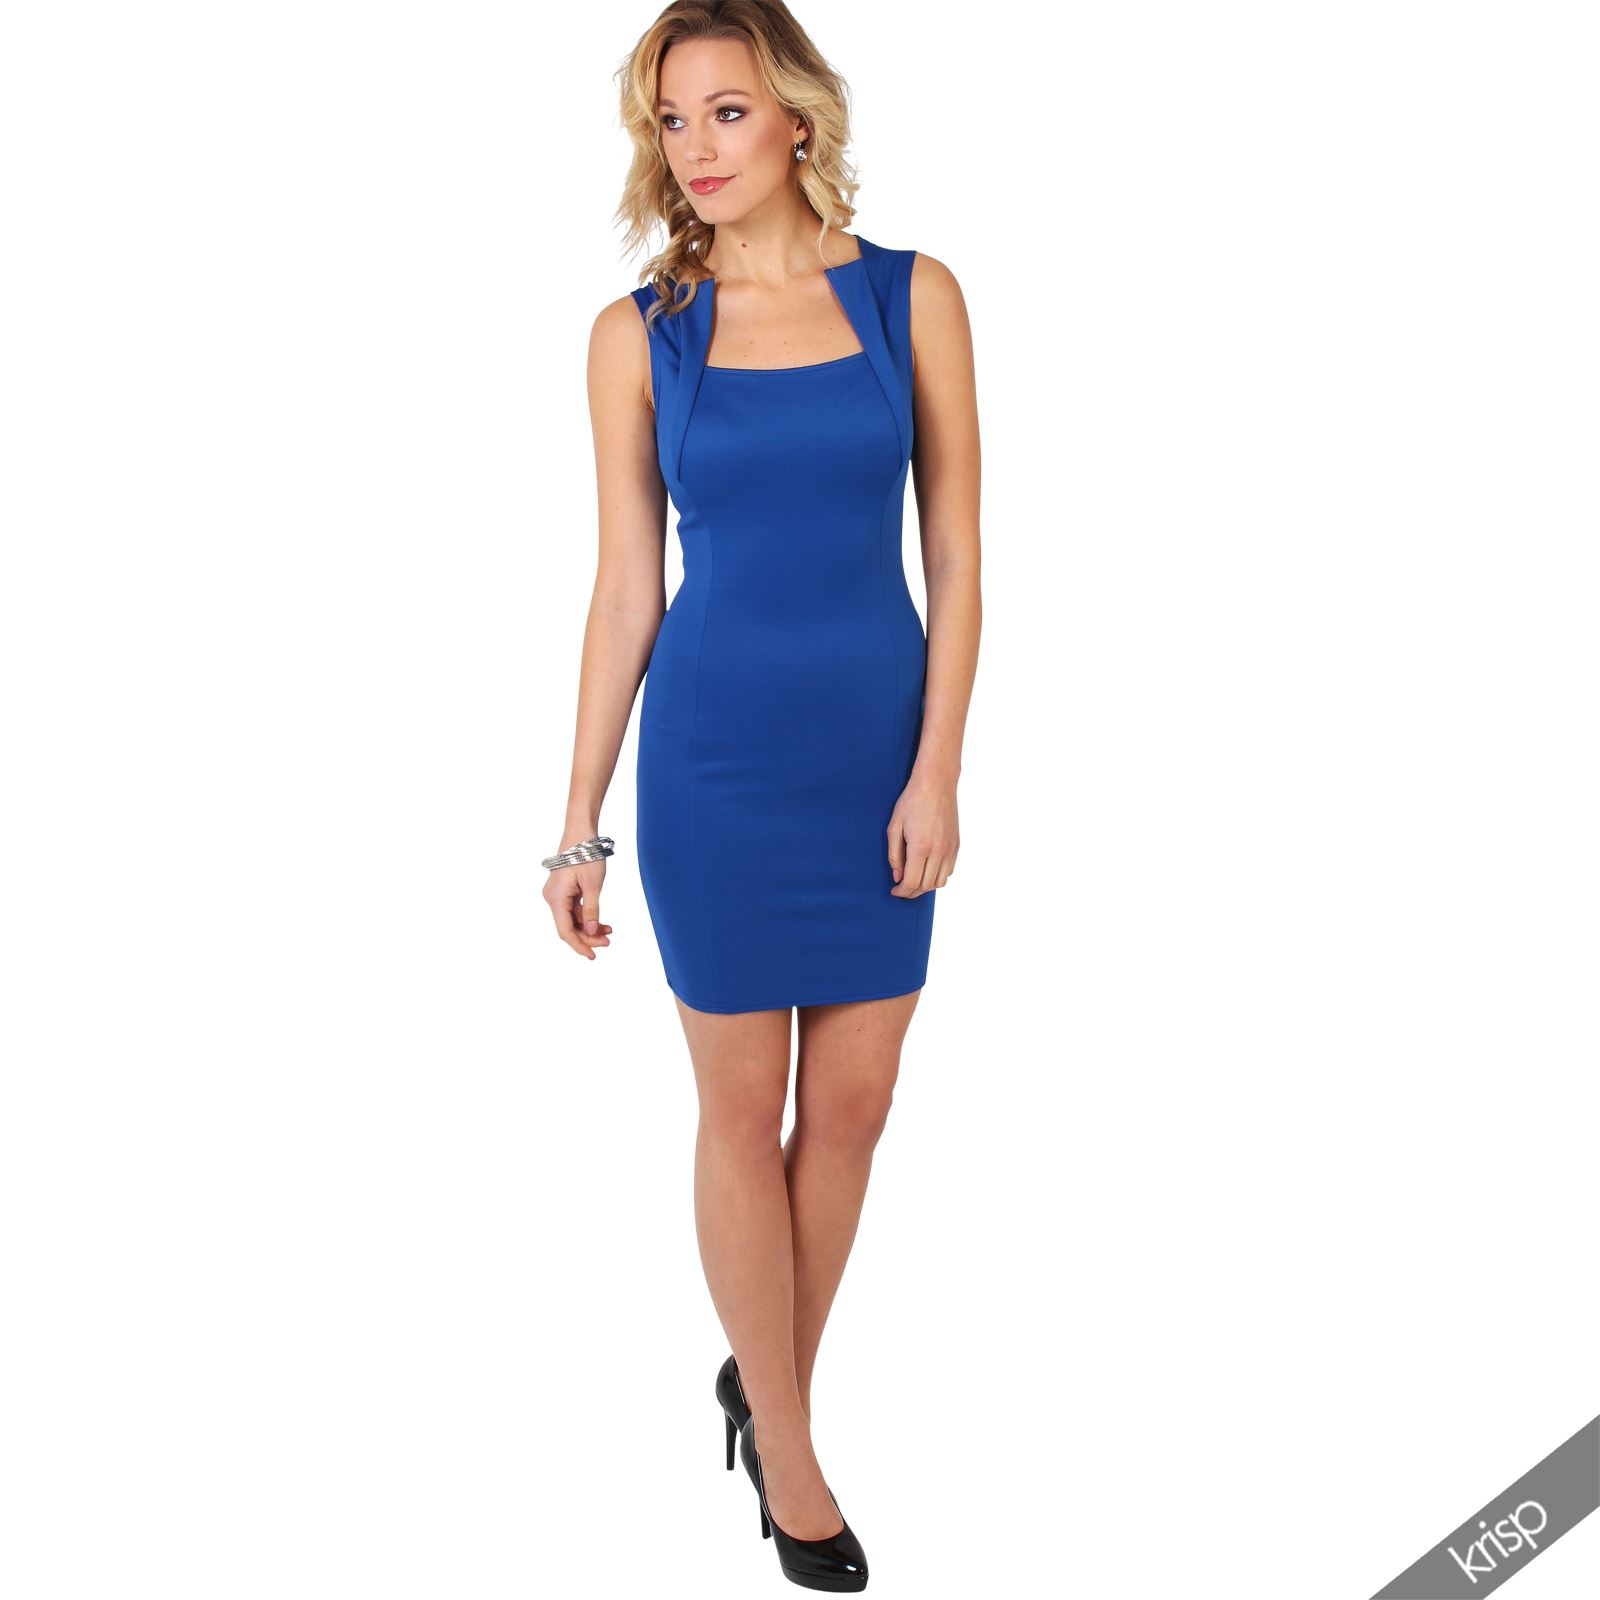 Ladies-Fashion-Bodycon-Dress-Sleeveless-Backless-Party-Fitted-Cocktail-Pencil thumbnail 18